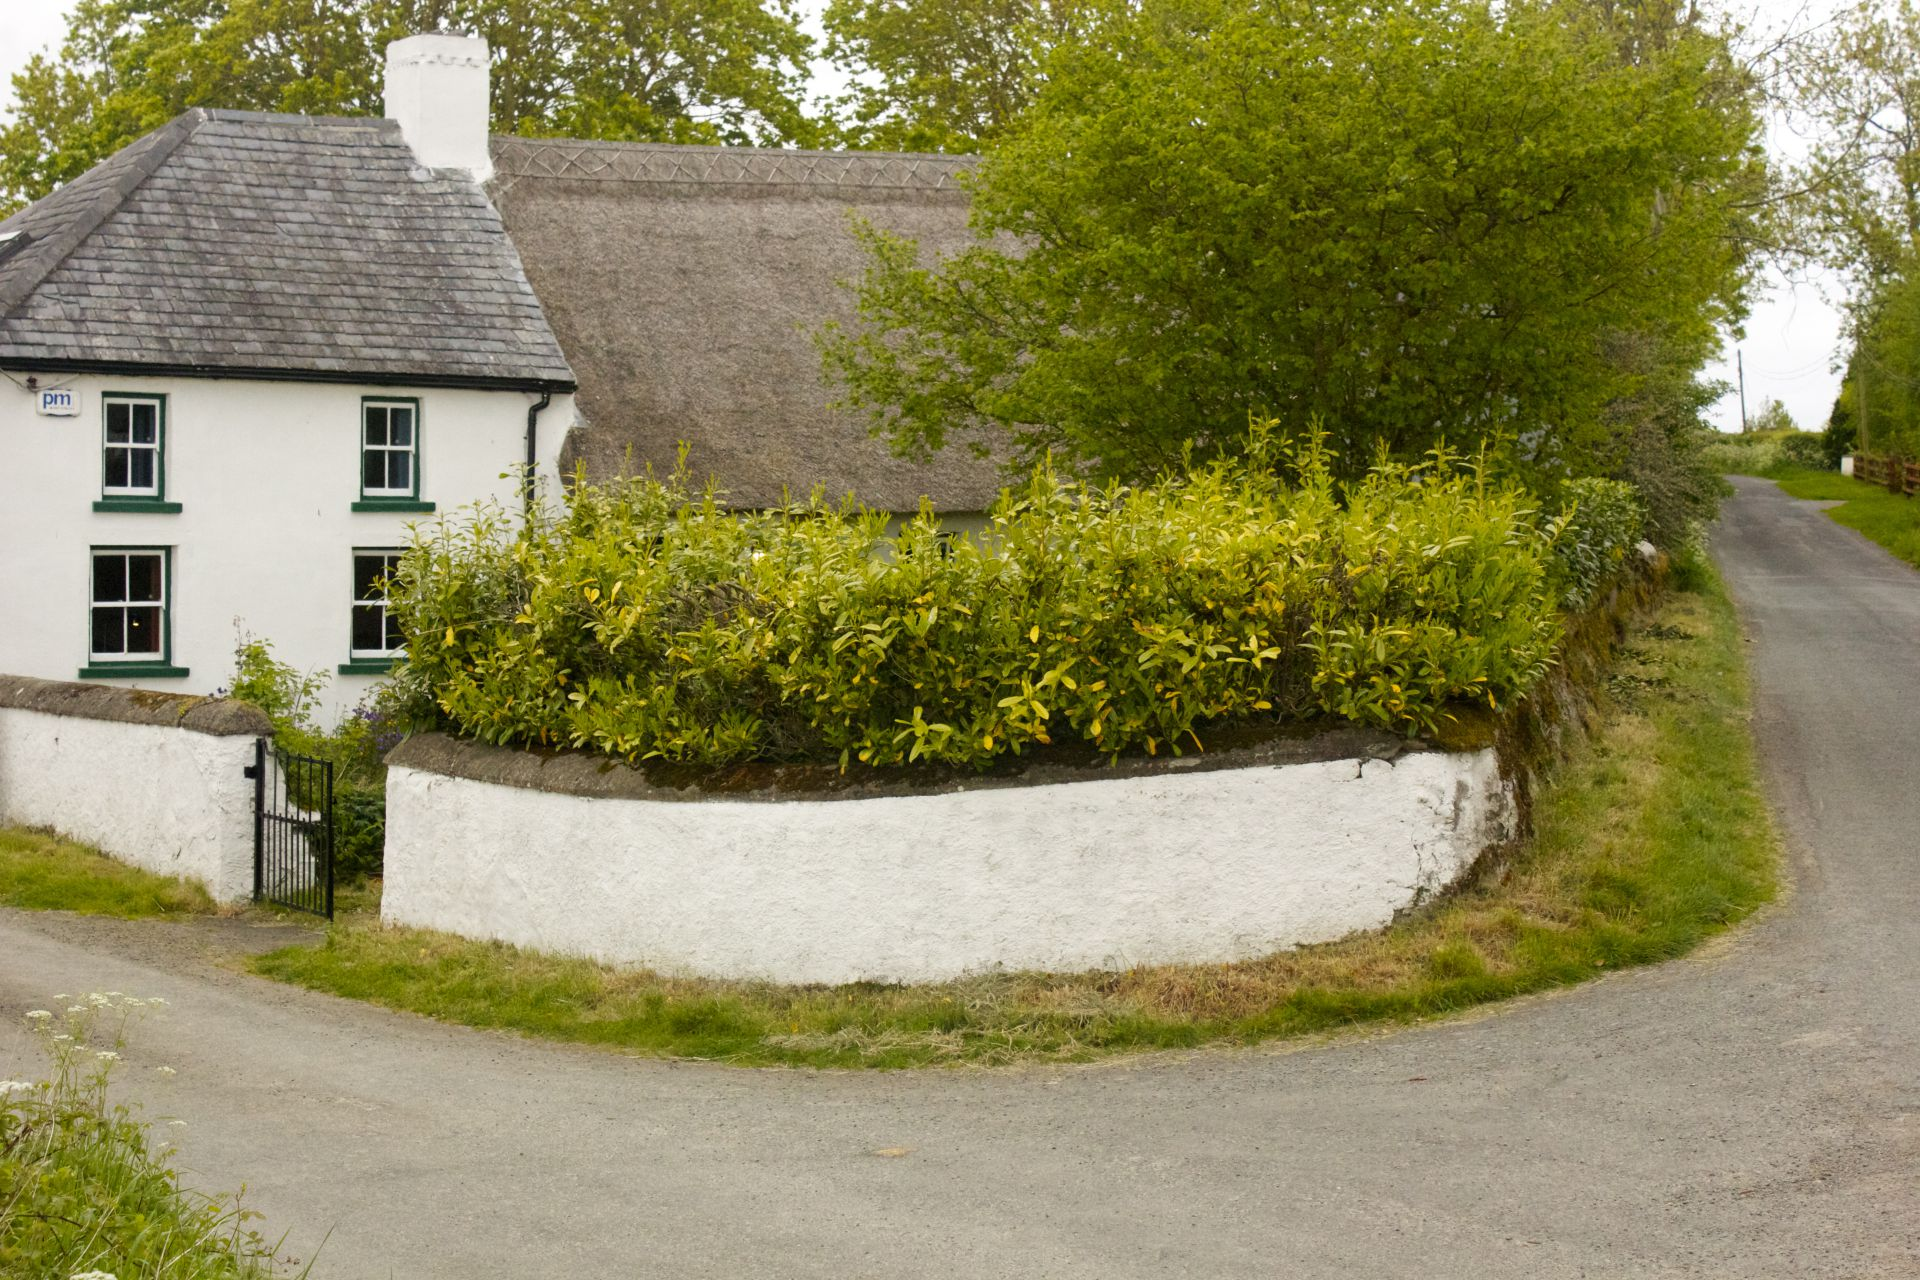 ireland dublin original the sea rent rooms cottages in by cottage to for